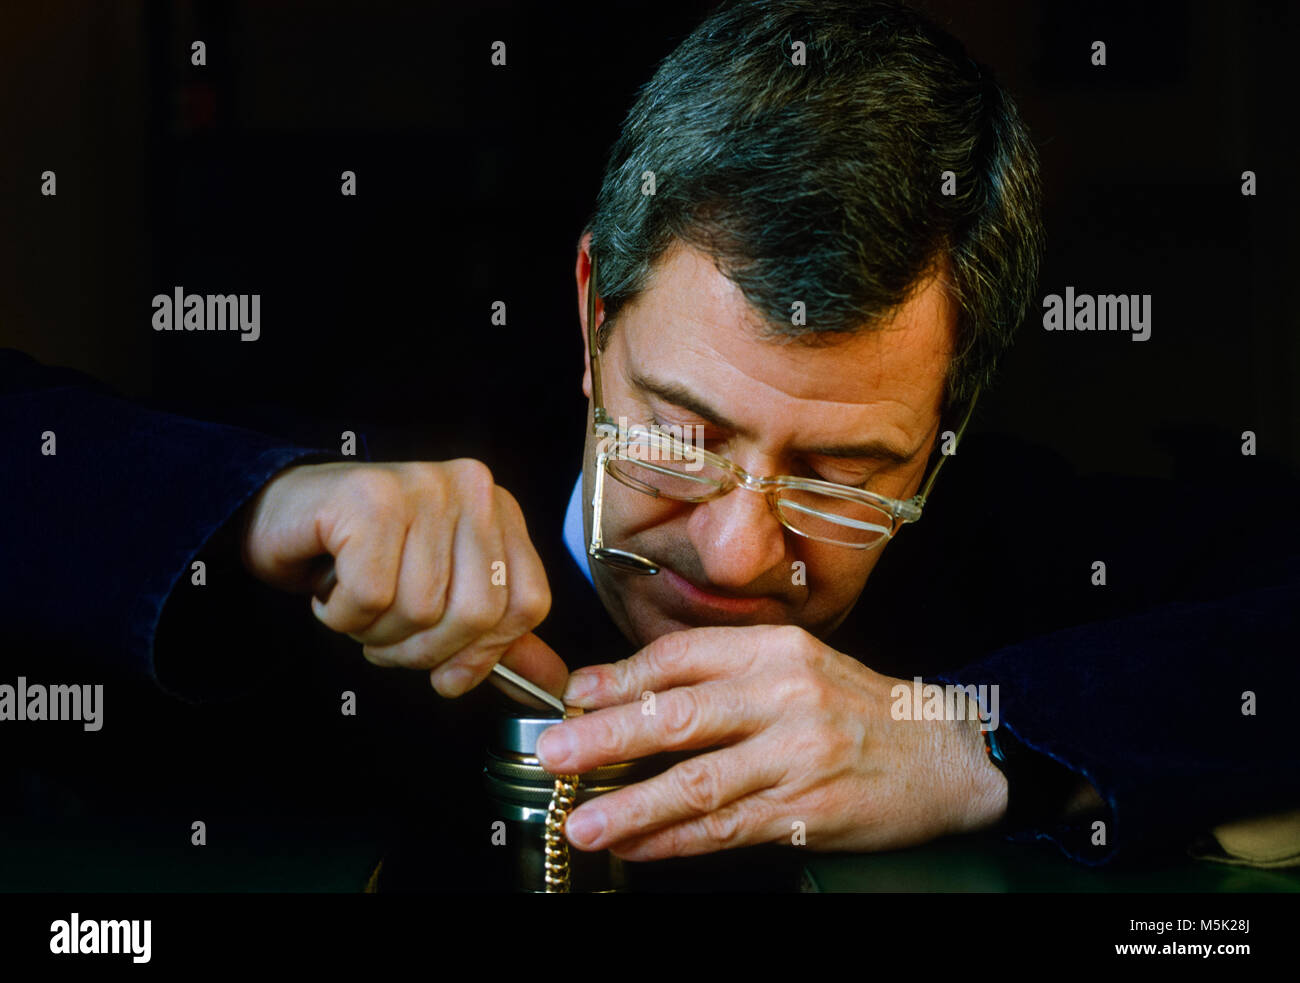 Engraver working on bracelet - Stock Image